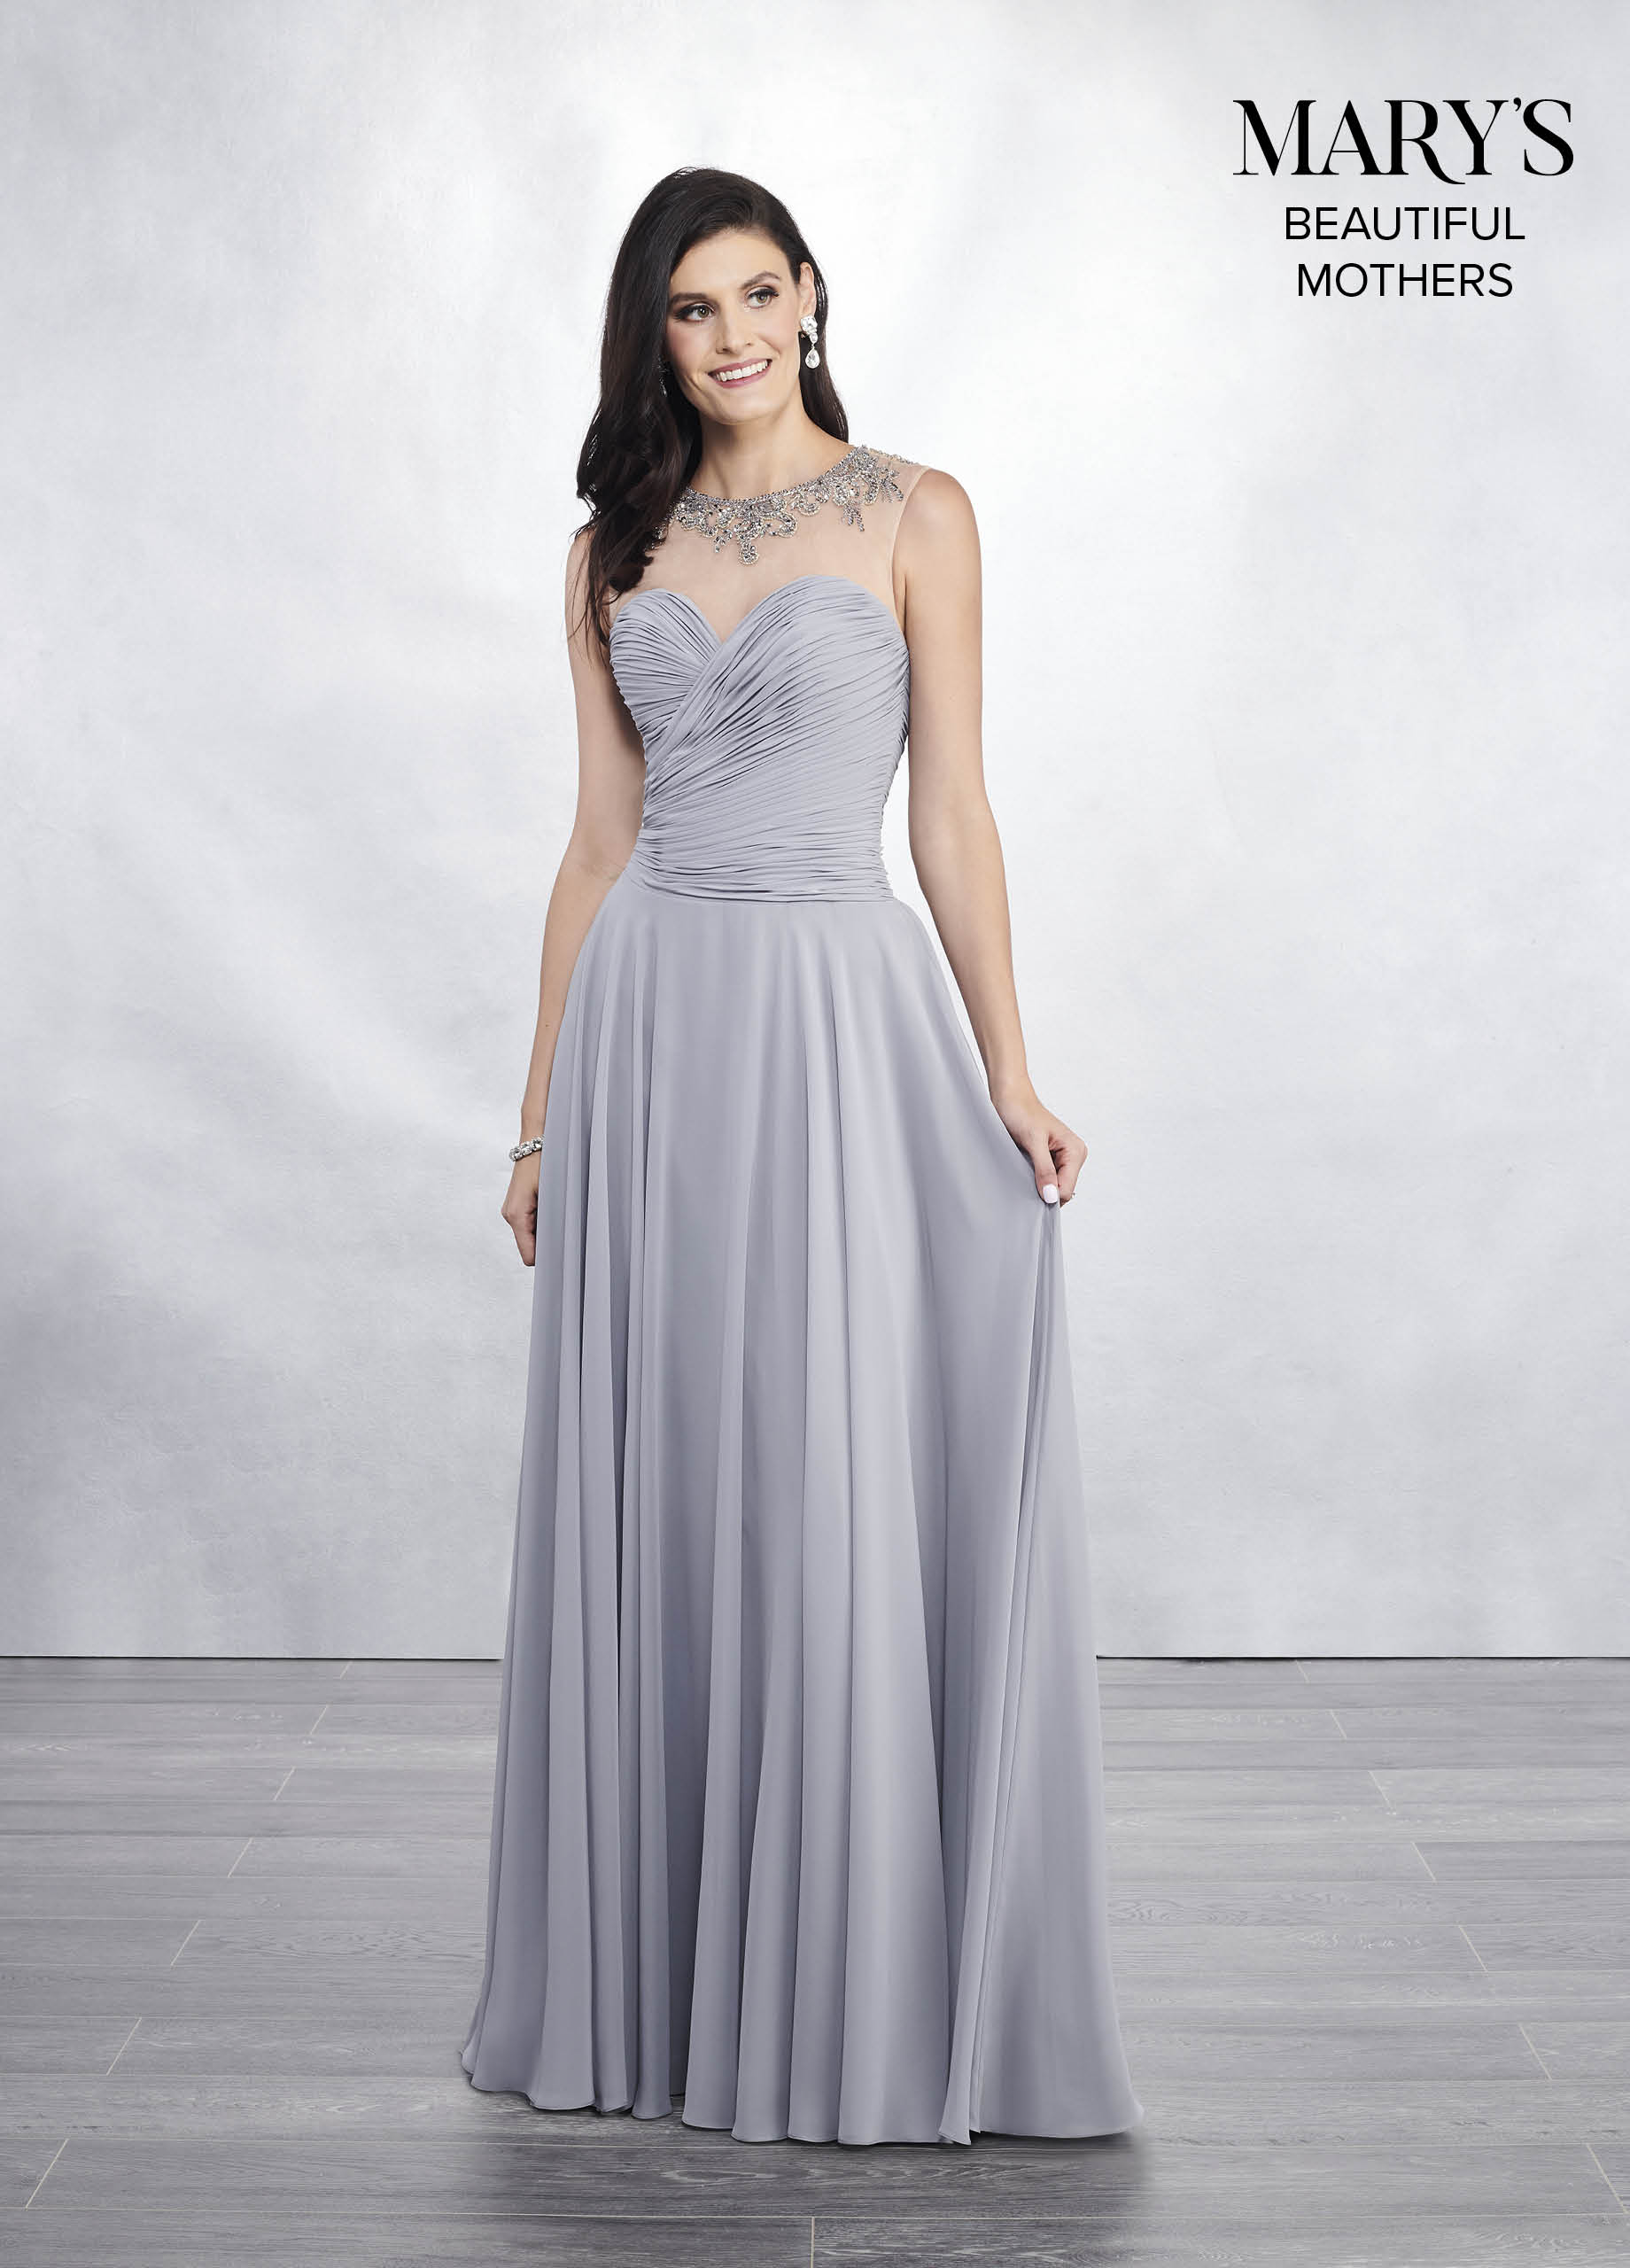 Mother Of The Bride Dresses | Beautiful Mothers | Style - MB8052